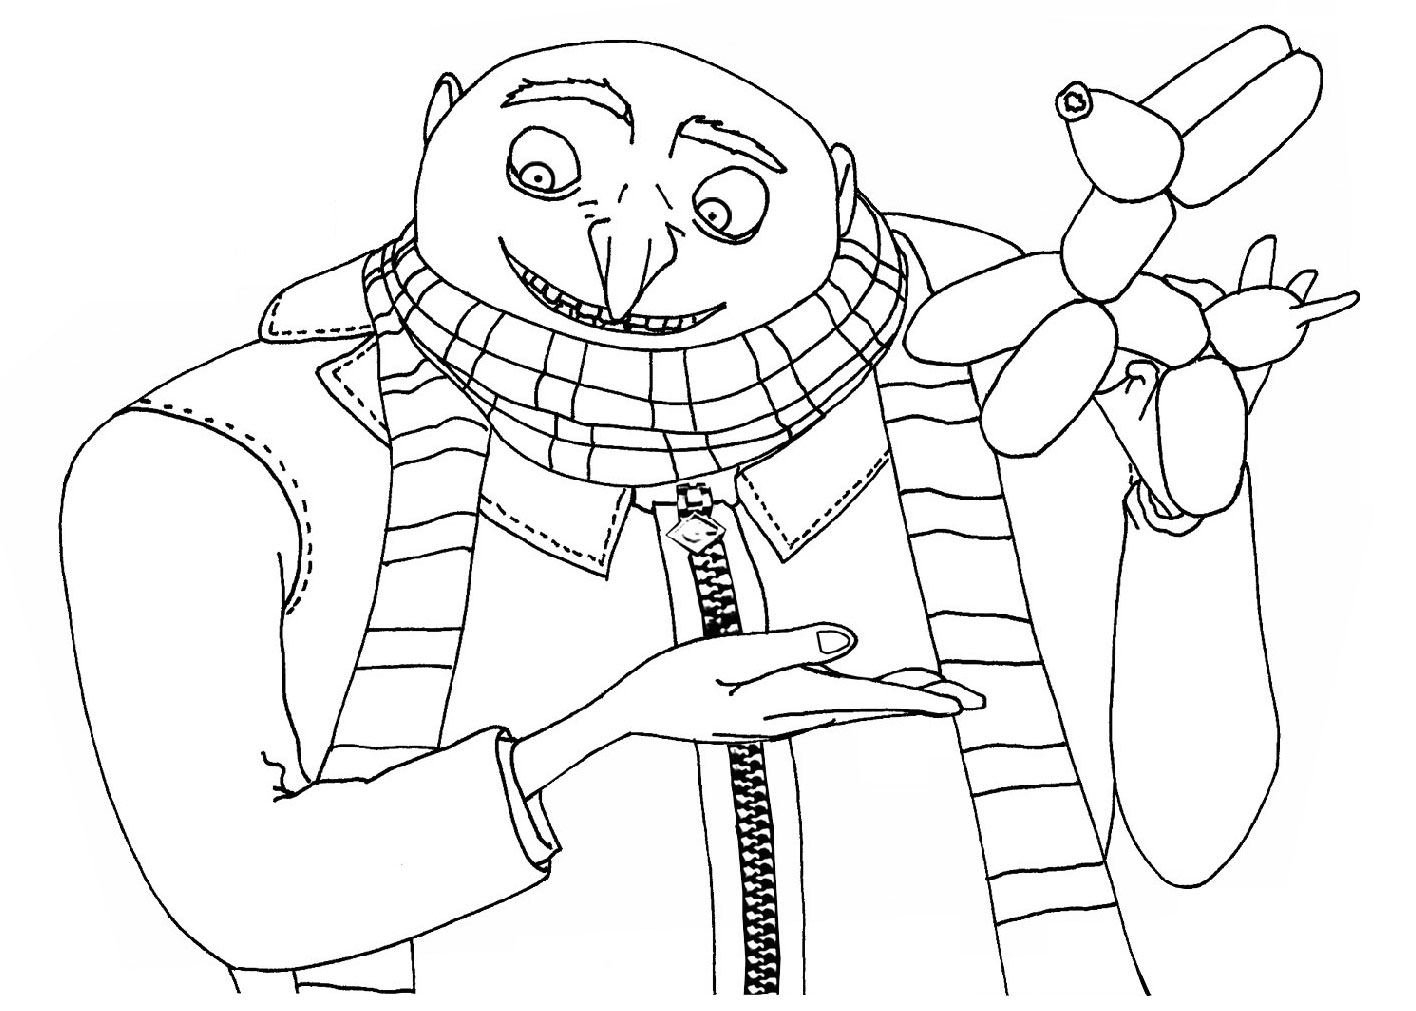 despicable me coloring pages minion of despicable me coloring pages cartoons coloring pages despicable me coloring